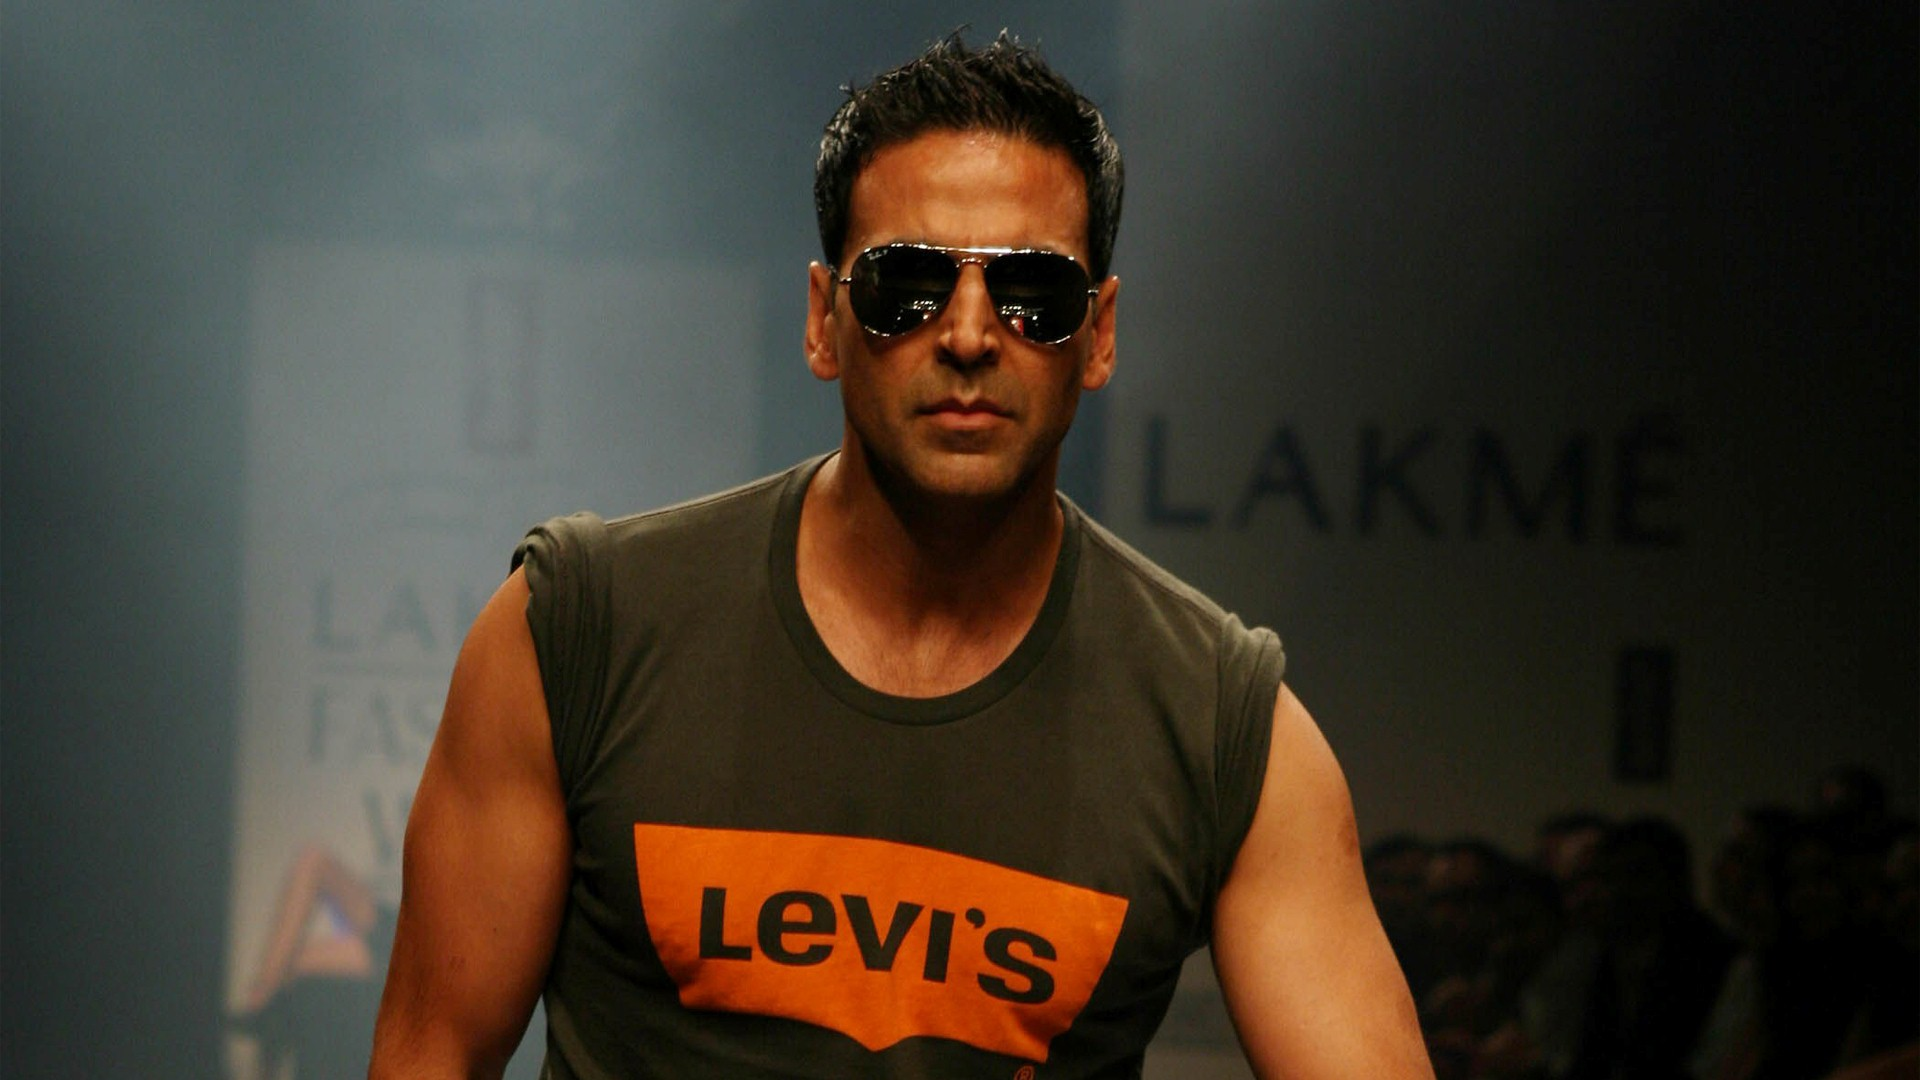 Best-Bollywood-Action-Actor-Akshay-Kumar-HD-wallpaper-wp3403095